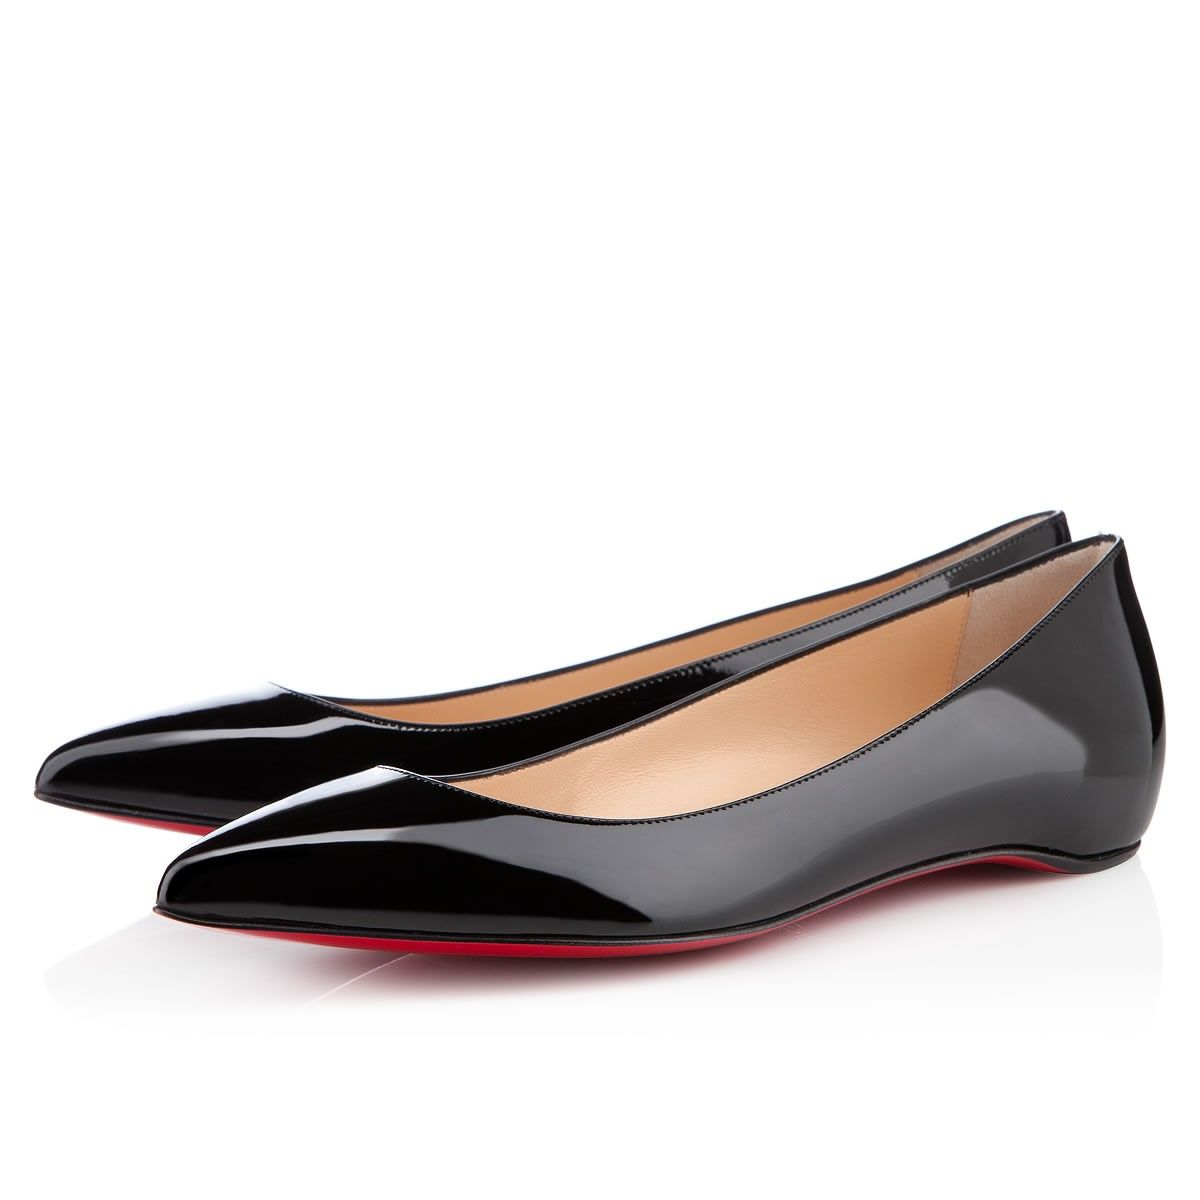 Patent Leather Women's Shoes: imaginary-7mbh1j.cf - Your Online Women's Shoes Store! Get 5% in rewards with Club O! Coupon Activated! Skip to main content FREE Shipping & Easy Returns* Search. Earn Rewards with Overstock. Christian Louboutin Iriza Black Patent d'Orsay Shoes.